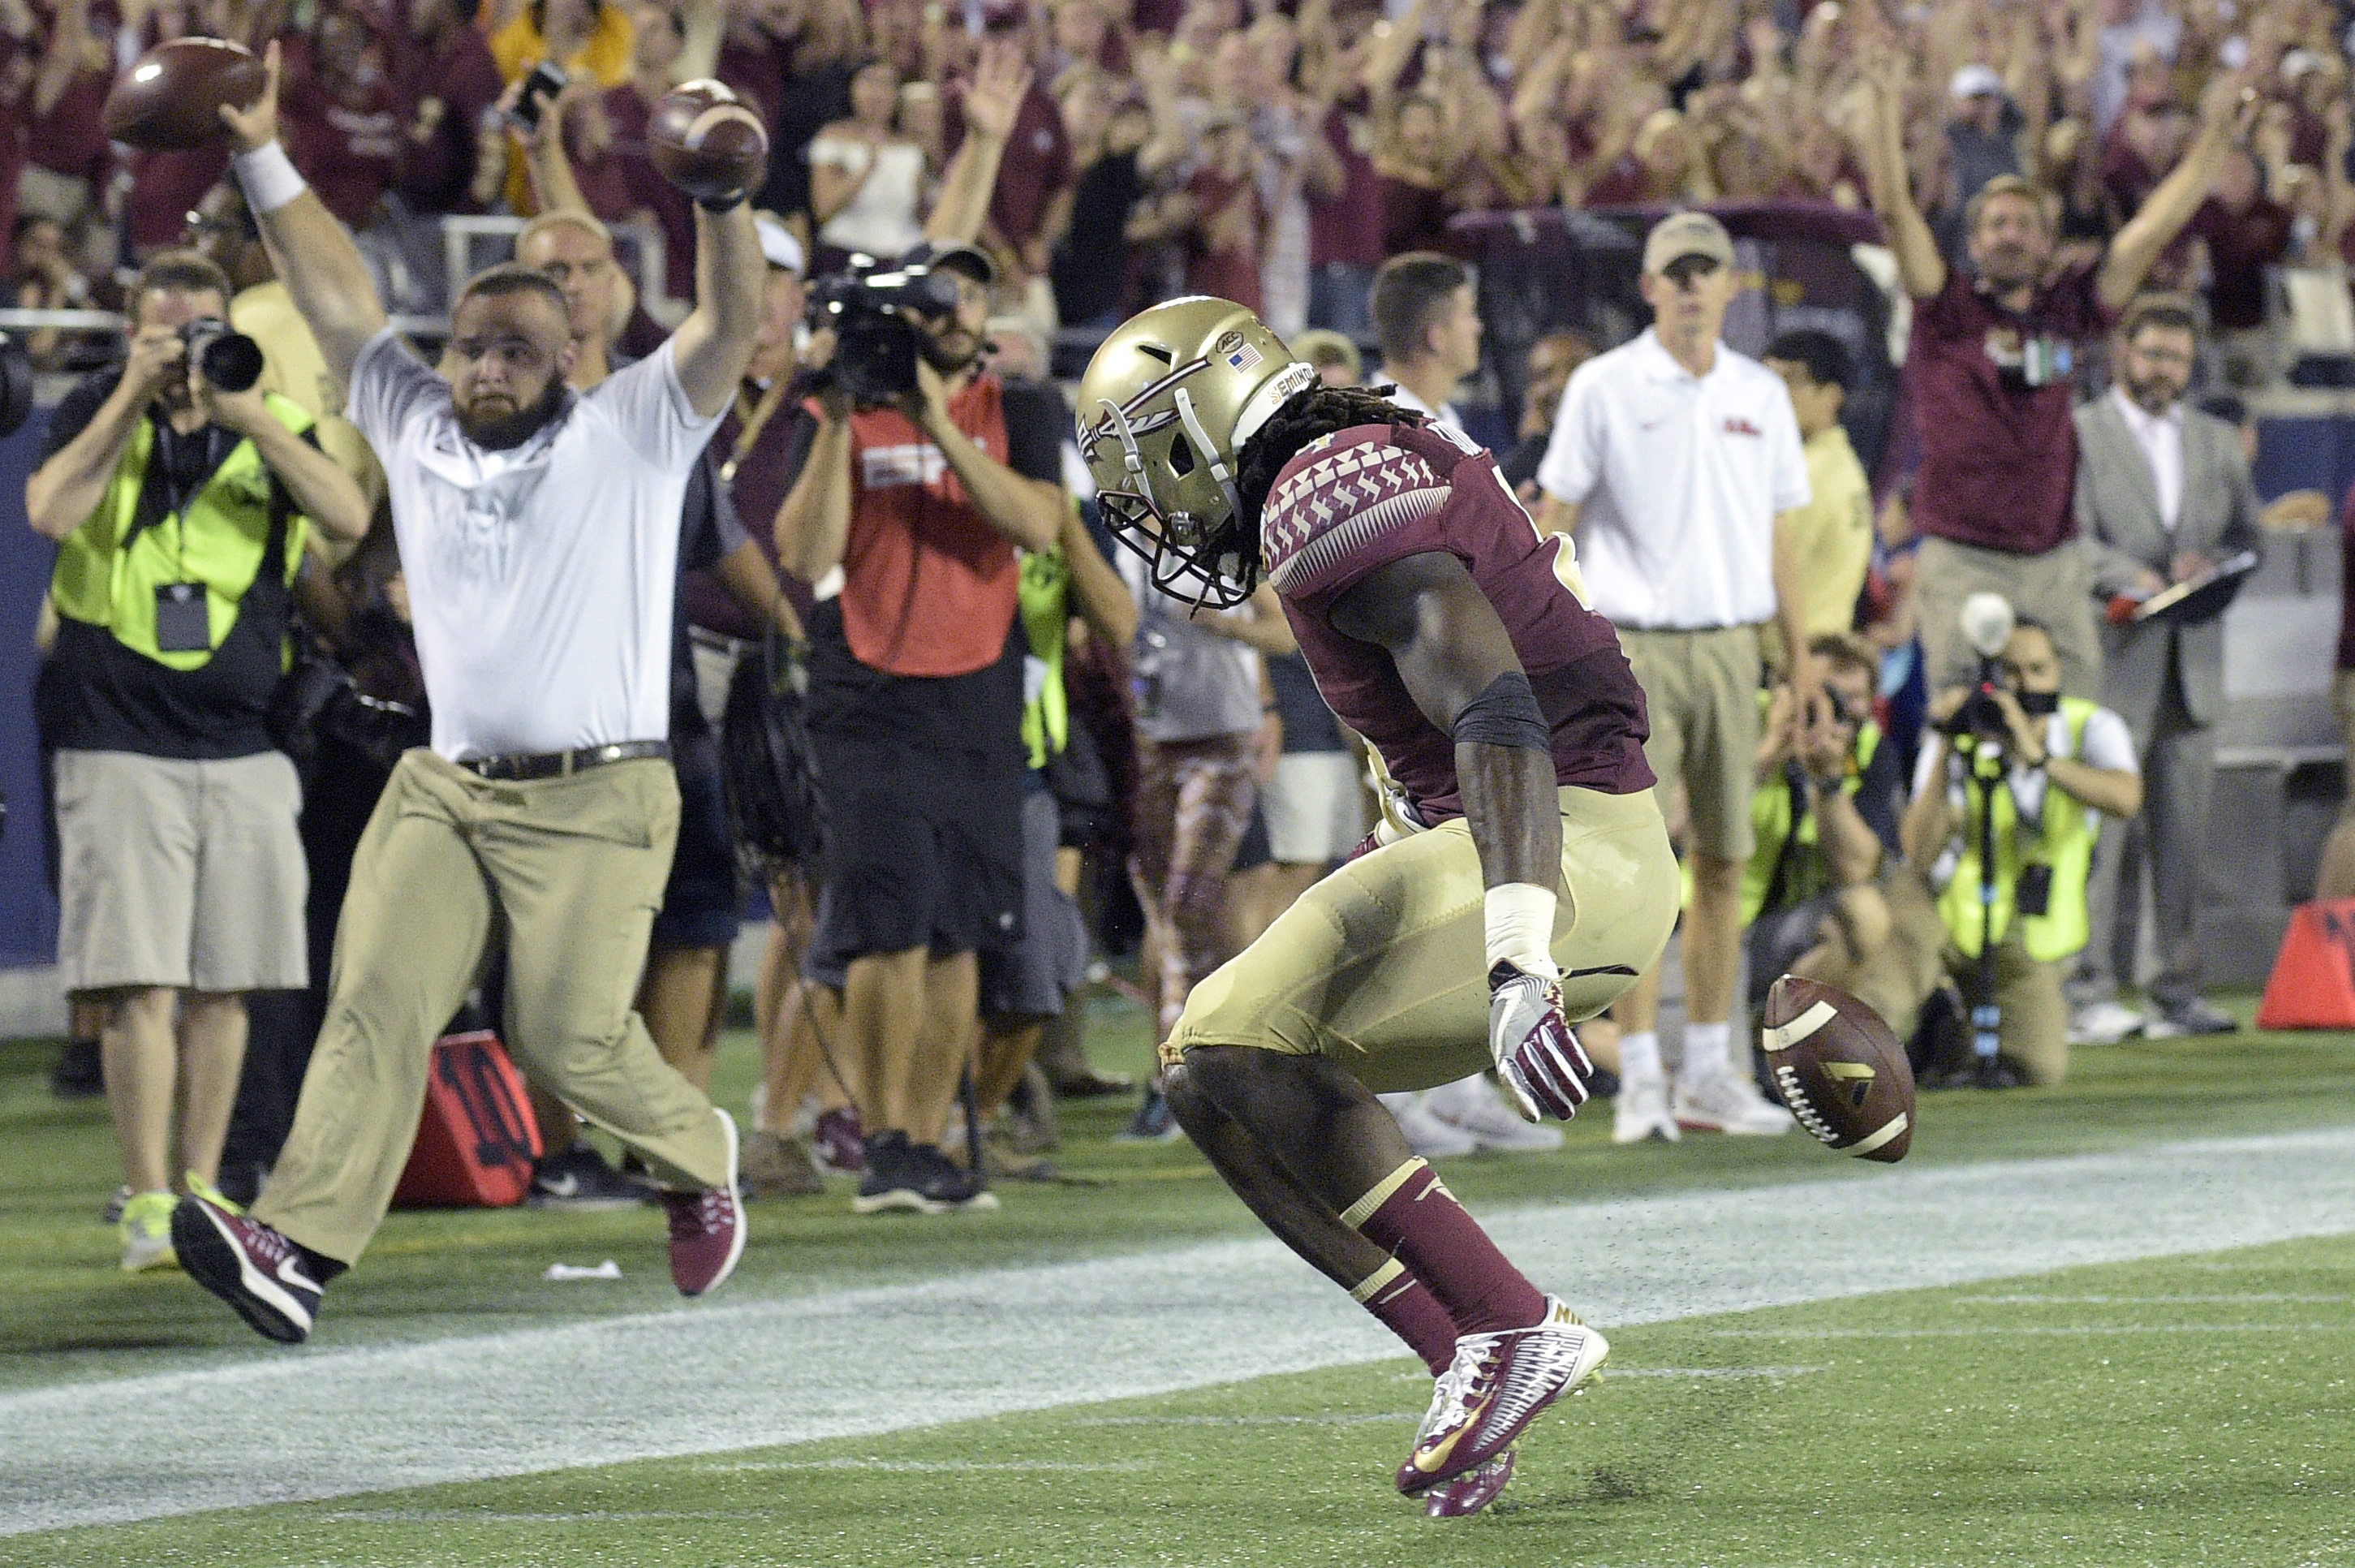 Florida State running back Dalvin Cook, front, fumbles the ball short of the goal line after catching a pass during the first half of an NCAA college football game against Mississippi in Orlando, Fla., Monday, Sept. 5, 2016. The ball went out of bounds an